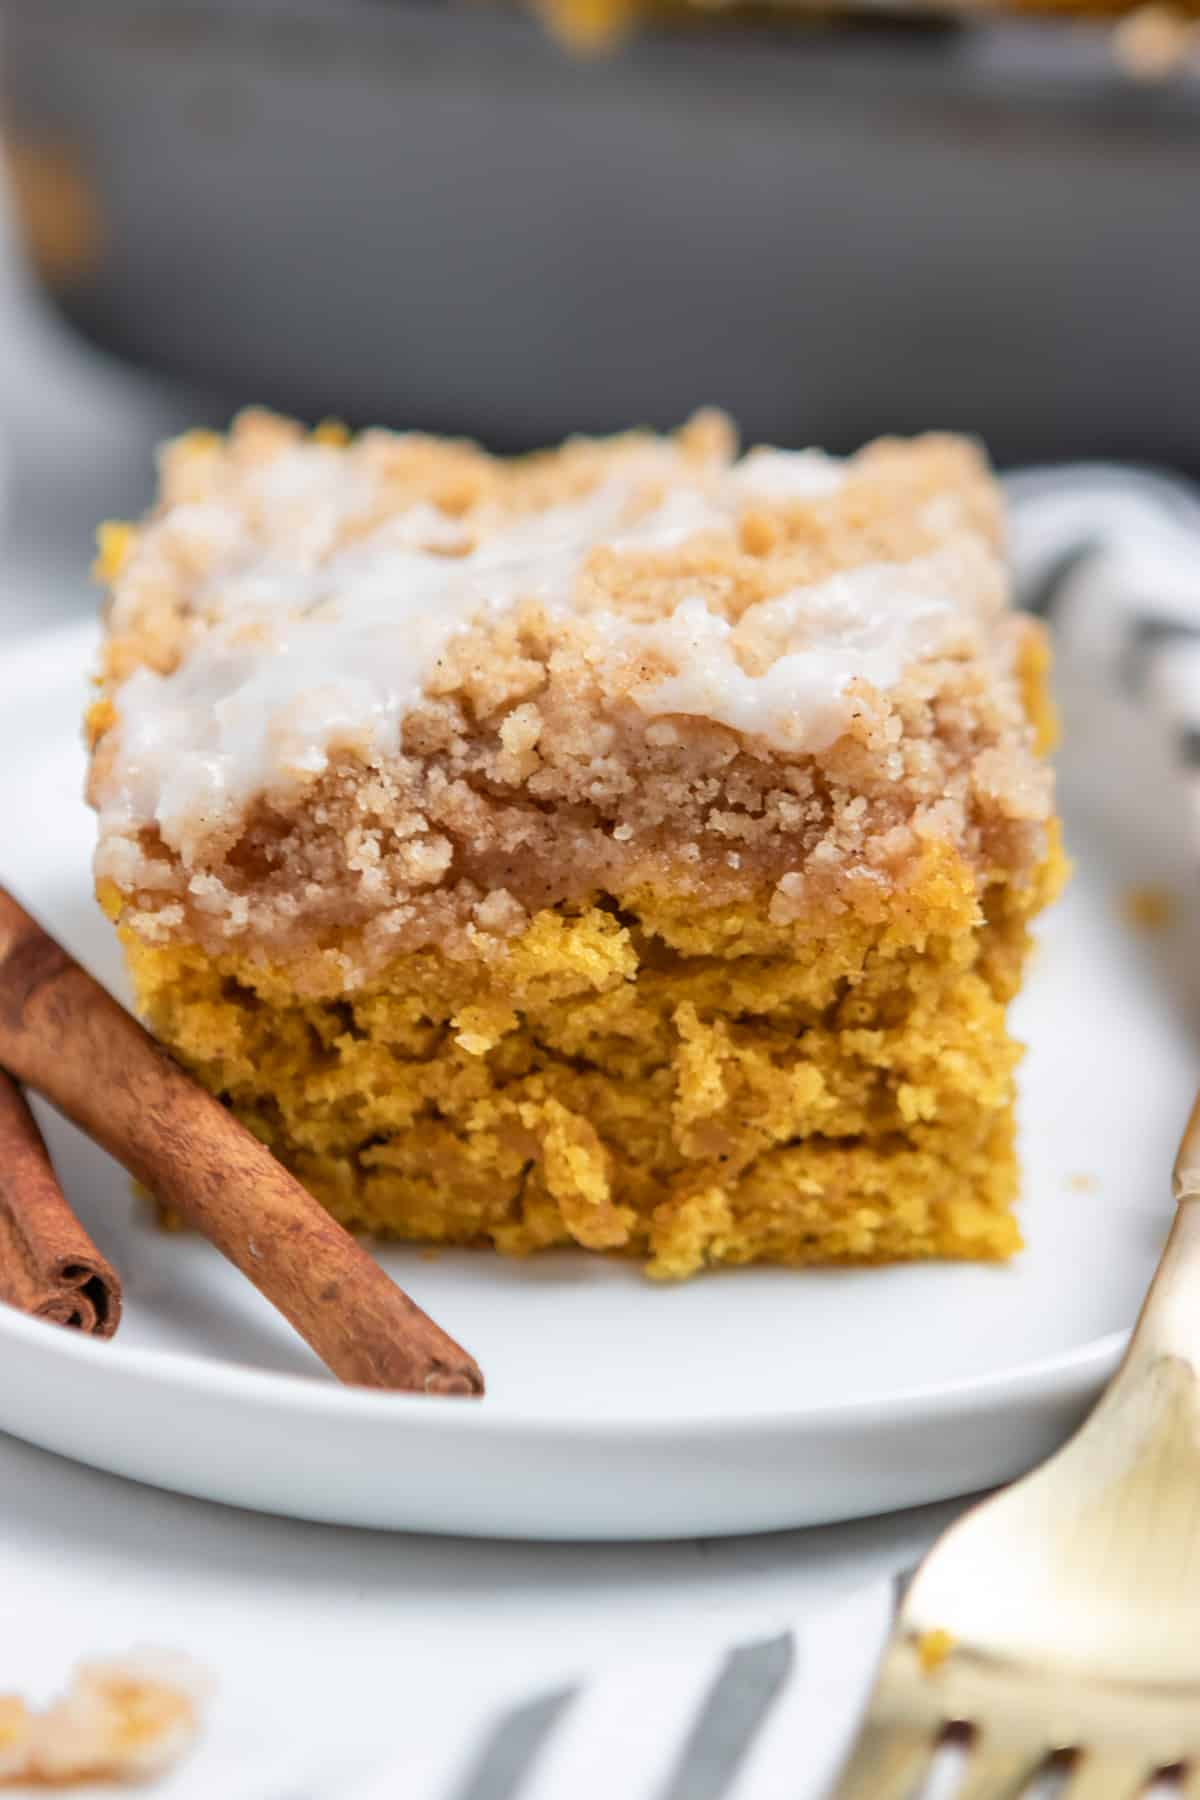 Pumpin coffee cake with streusel topping on white plate with cinnamon sticks.